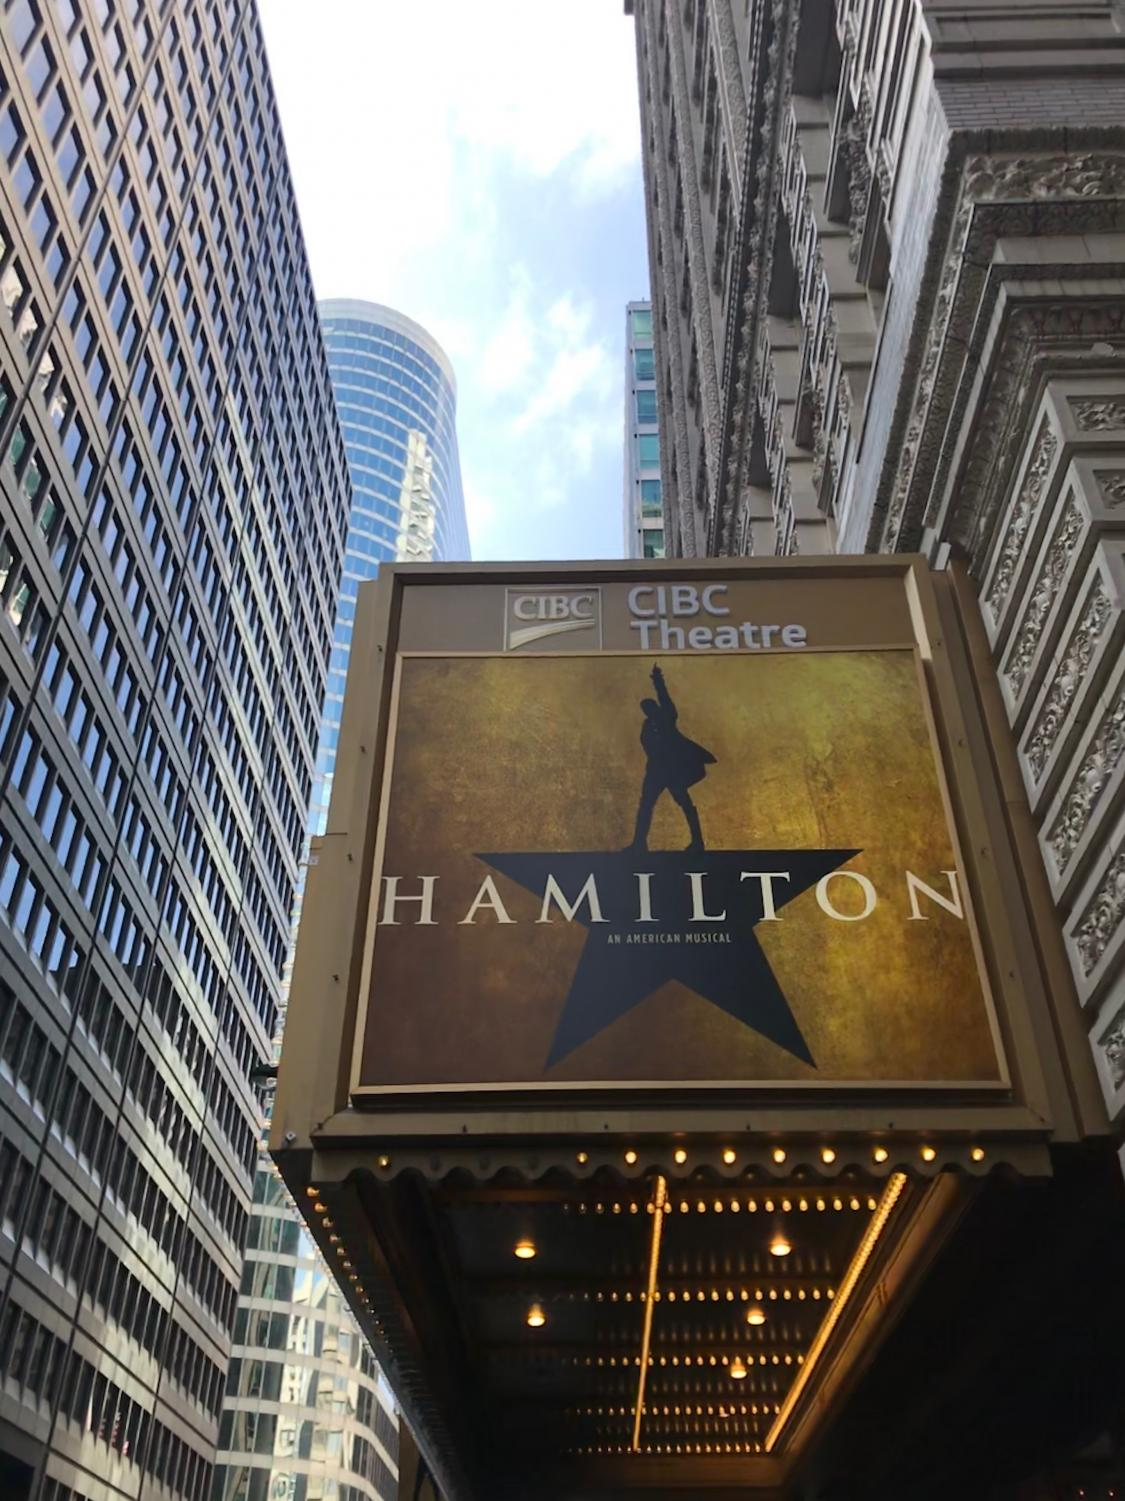 The billboard outside of the Hamilton Show in Downtown Chicago.